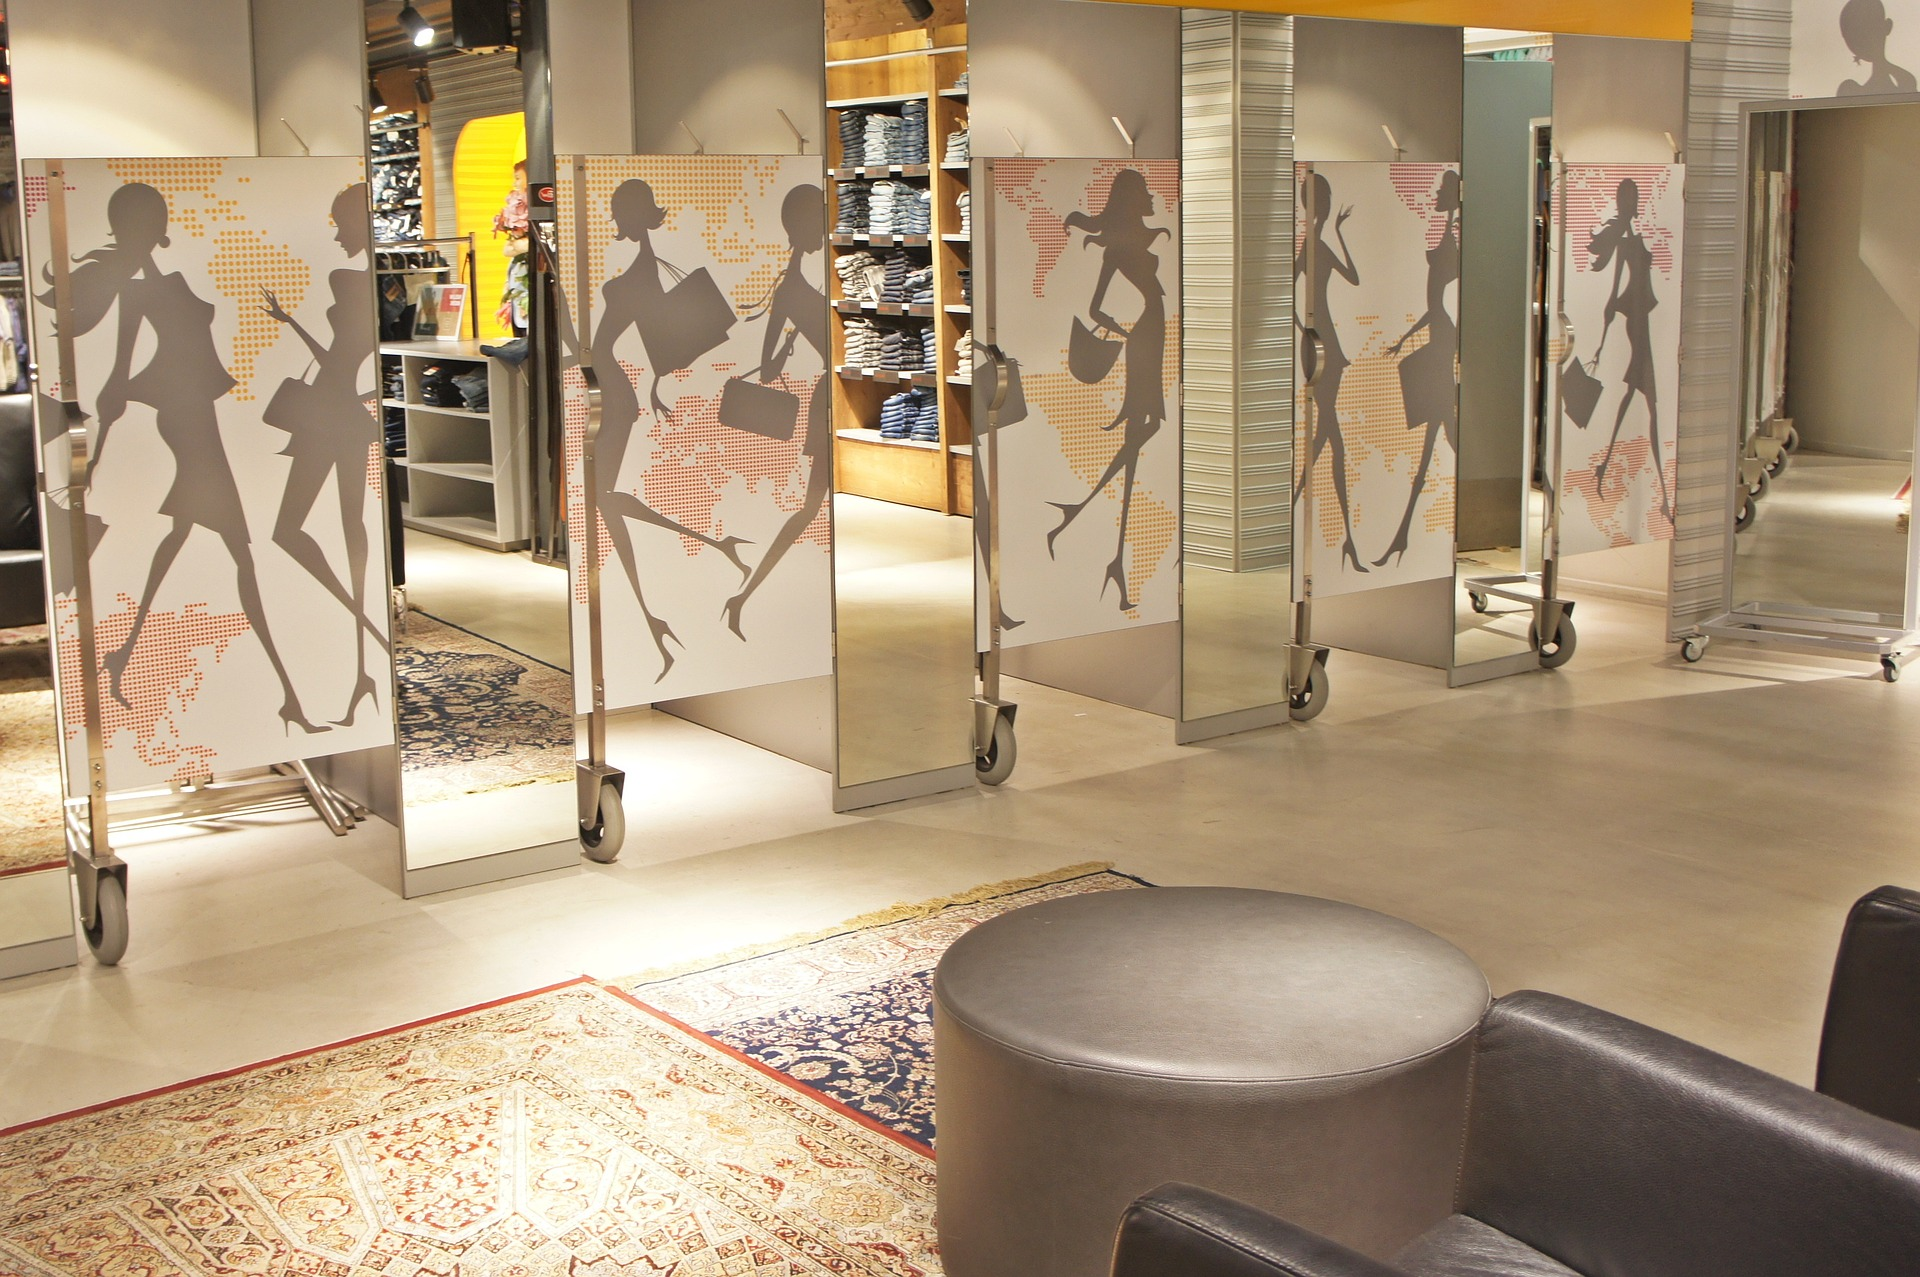 How Can Retail Loss Prevention Be Applied To Fitting Rooms?